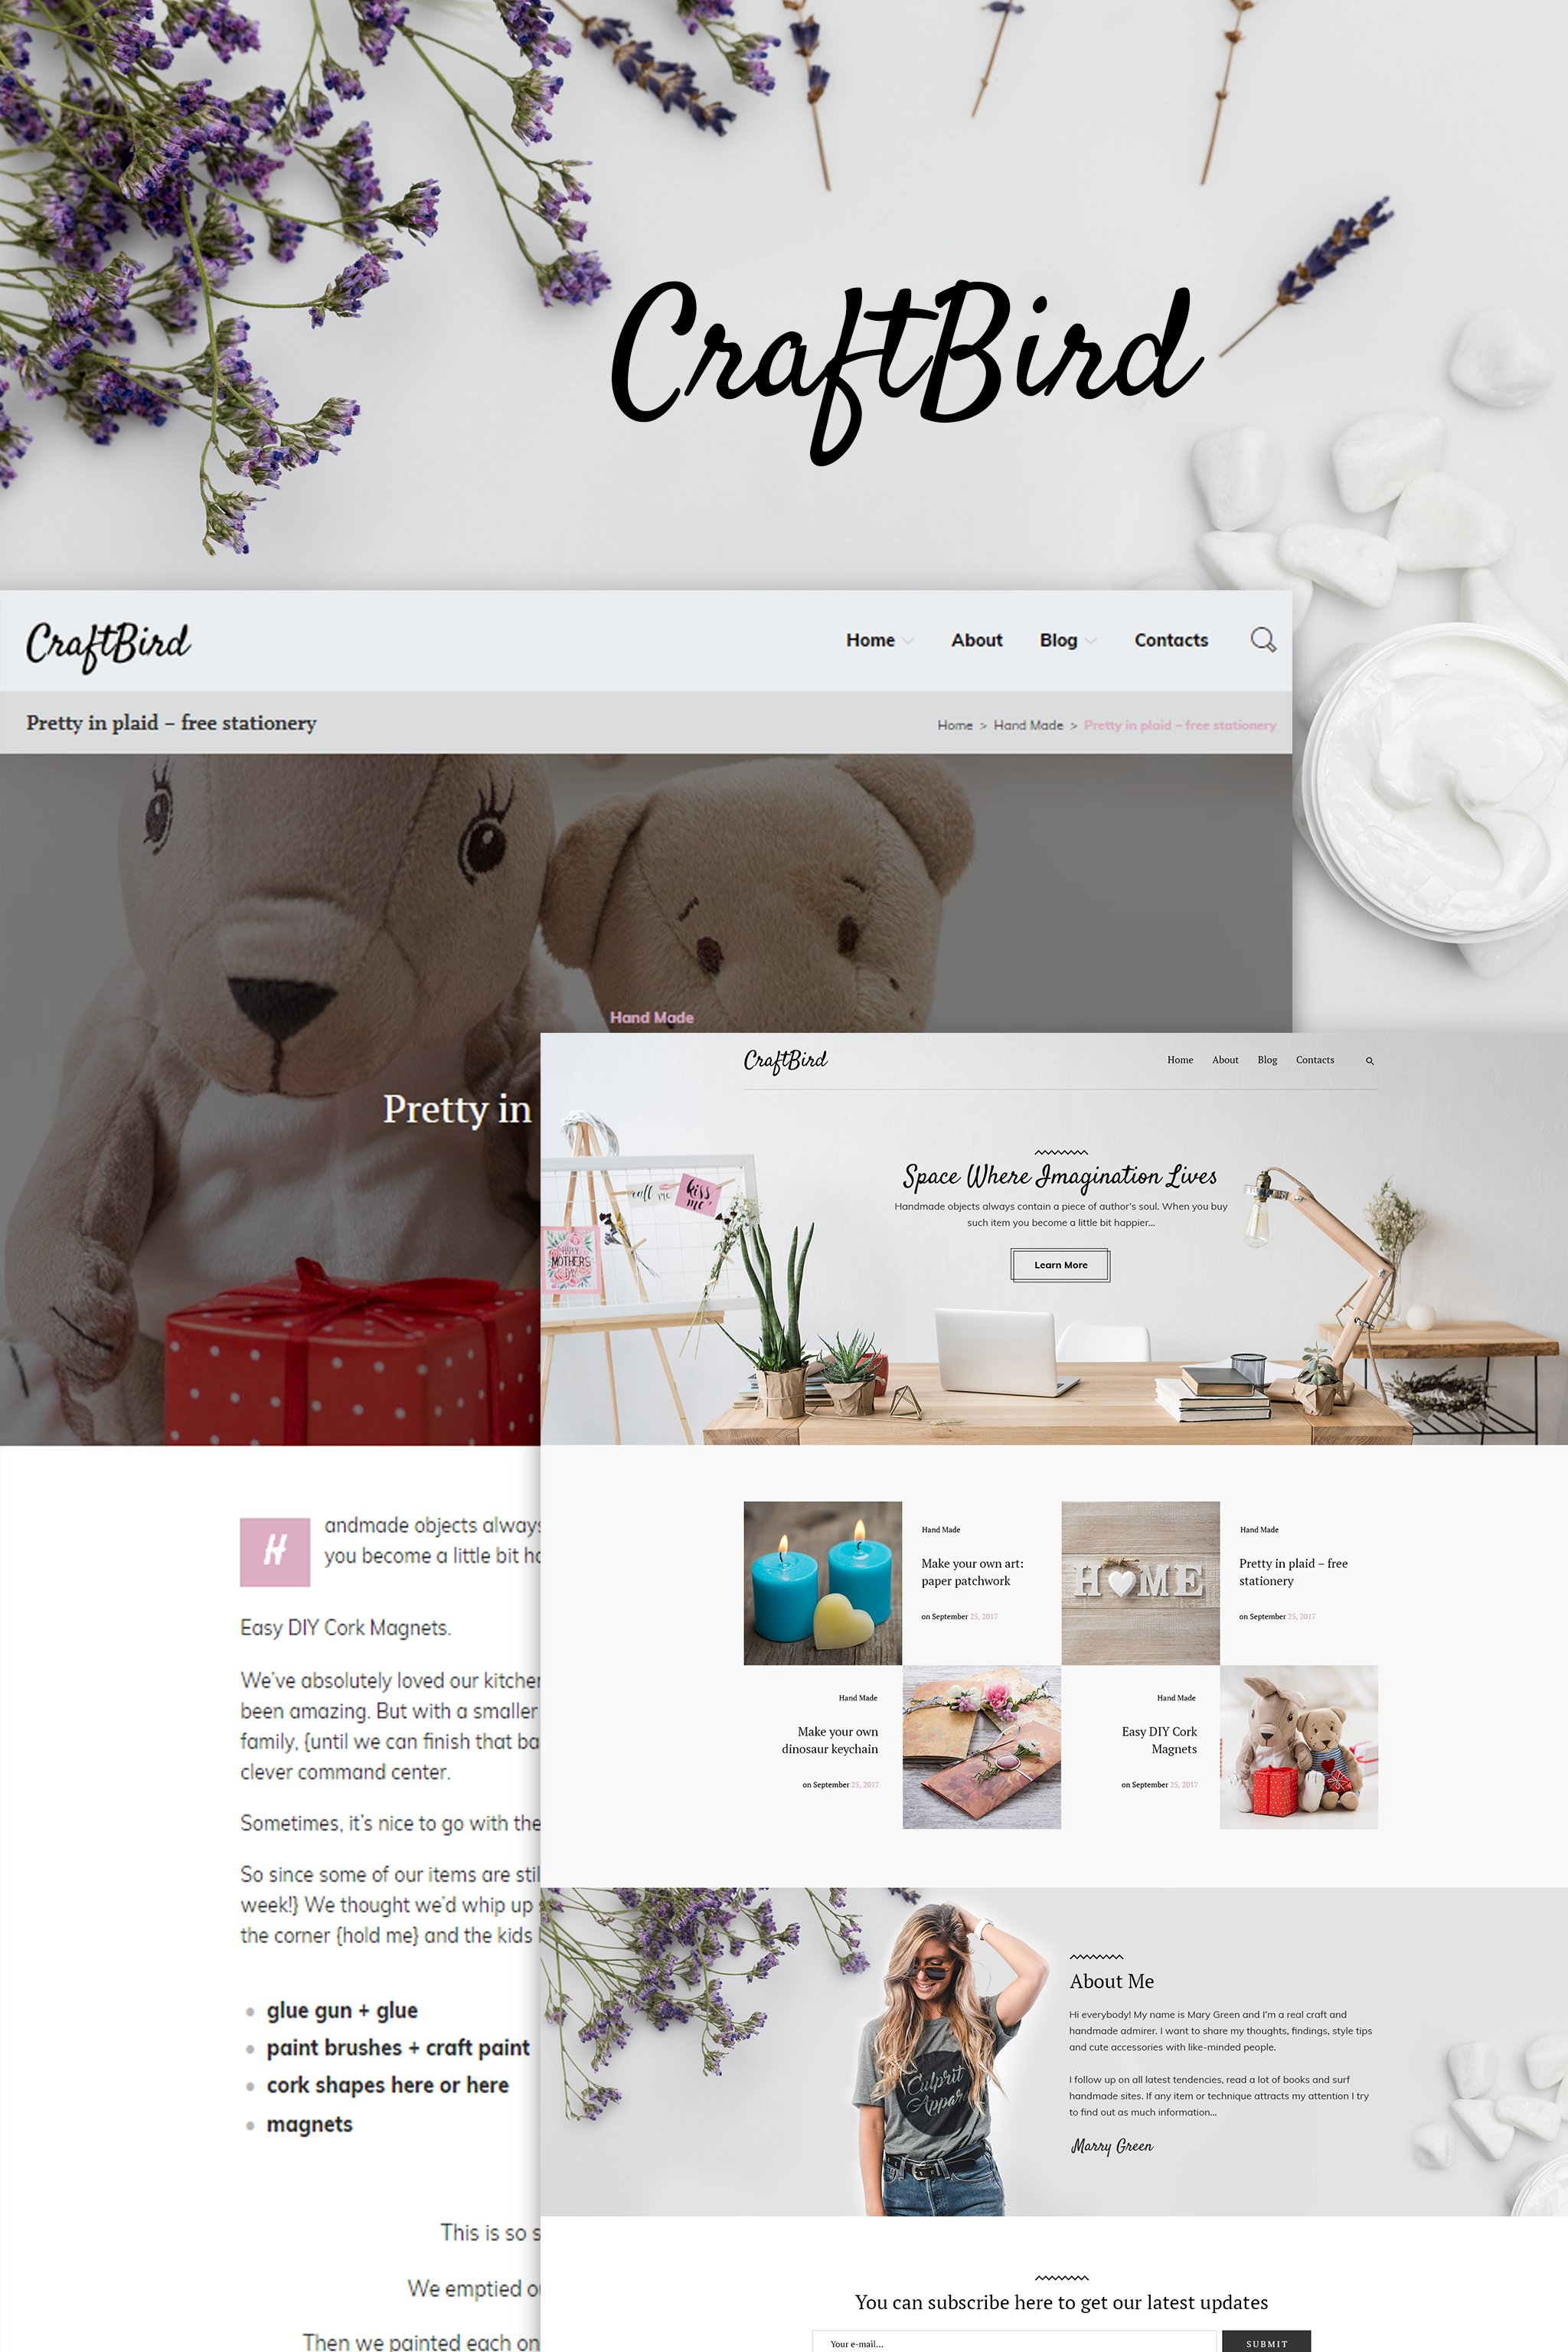 CraftBird - Handmade Artist Personal Blog WordPress Theme WordPress Theme - screenshot